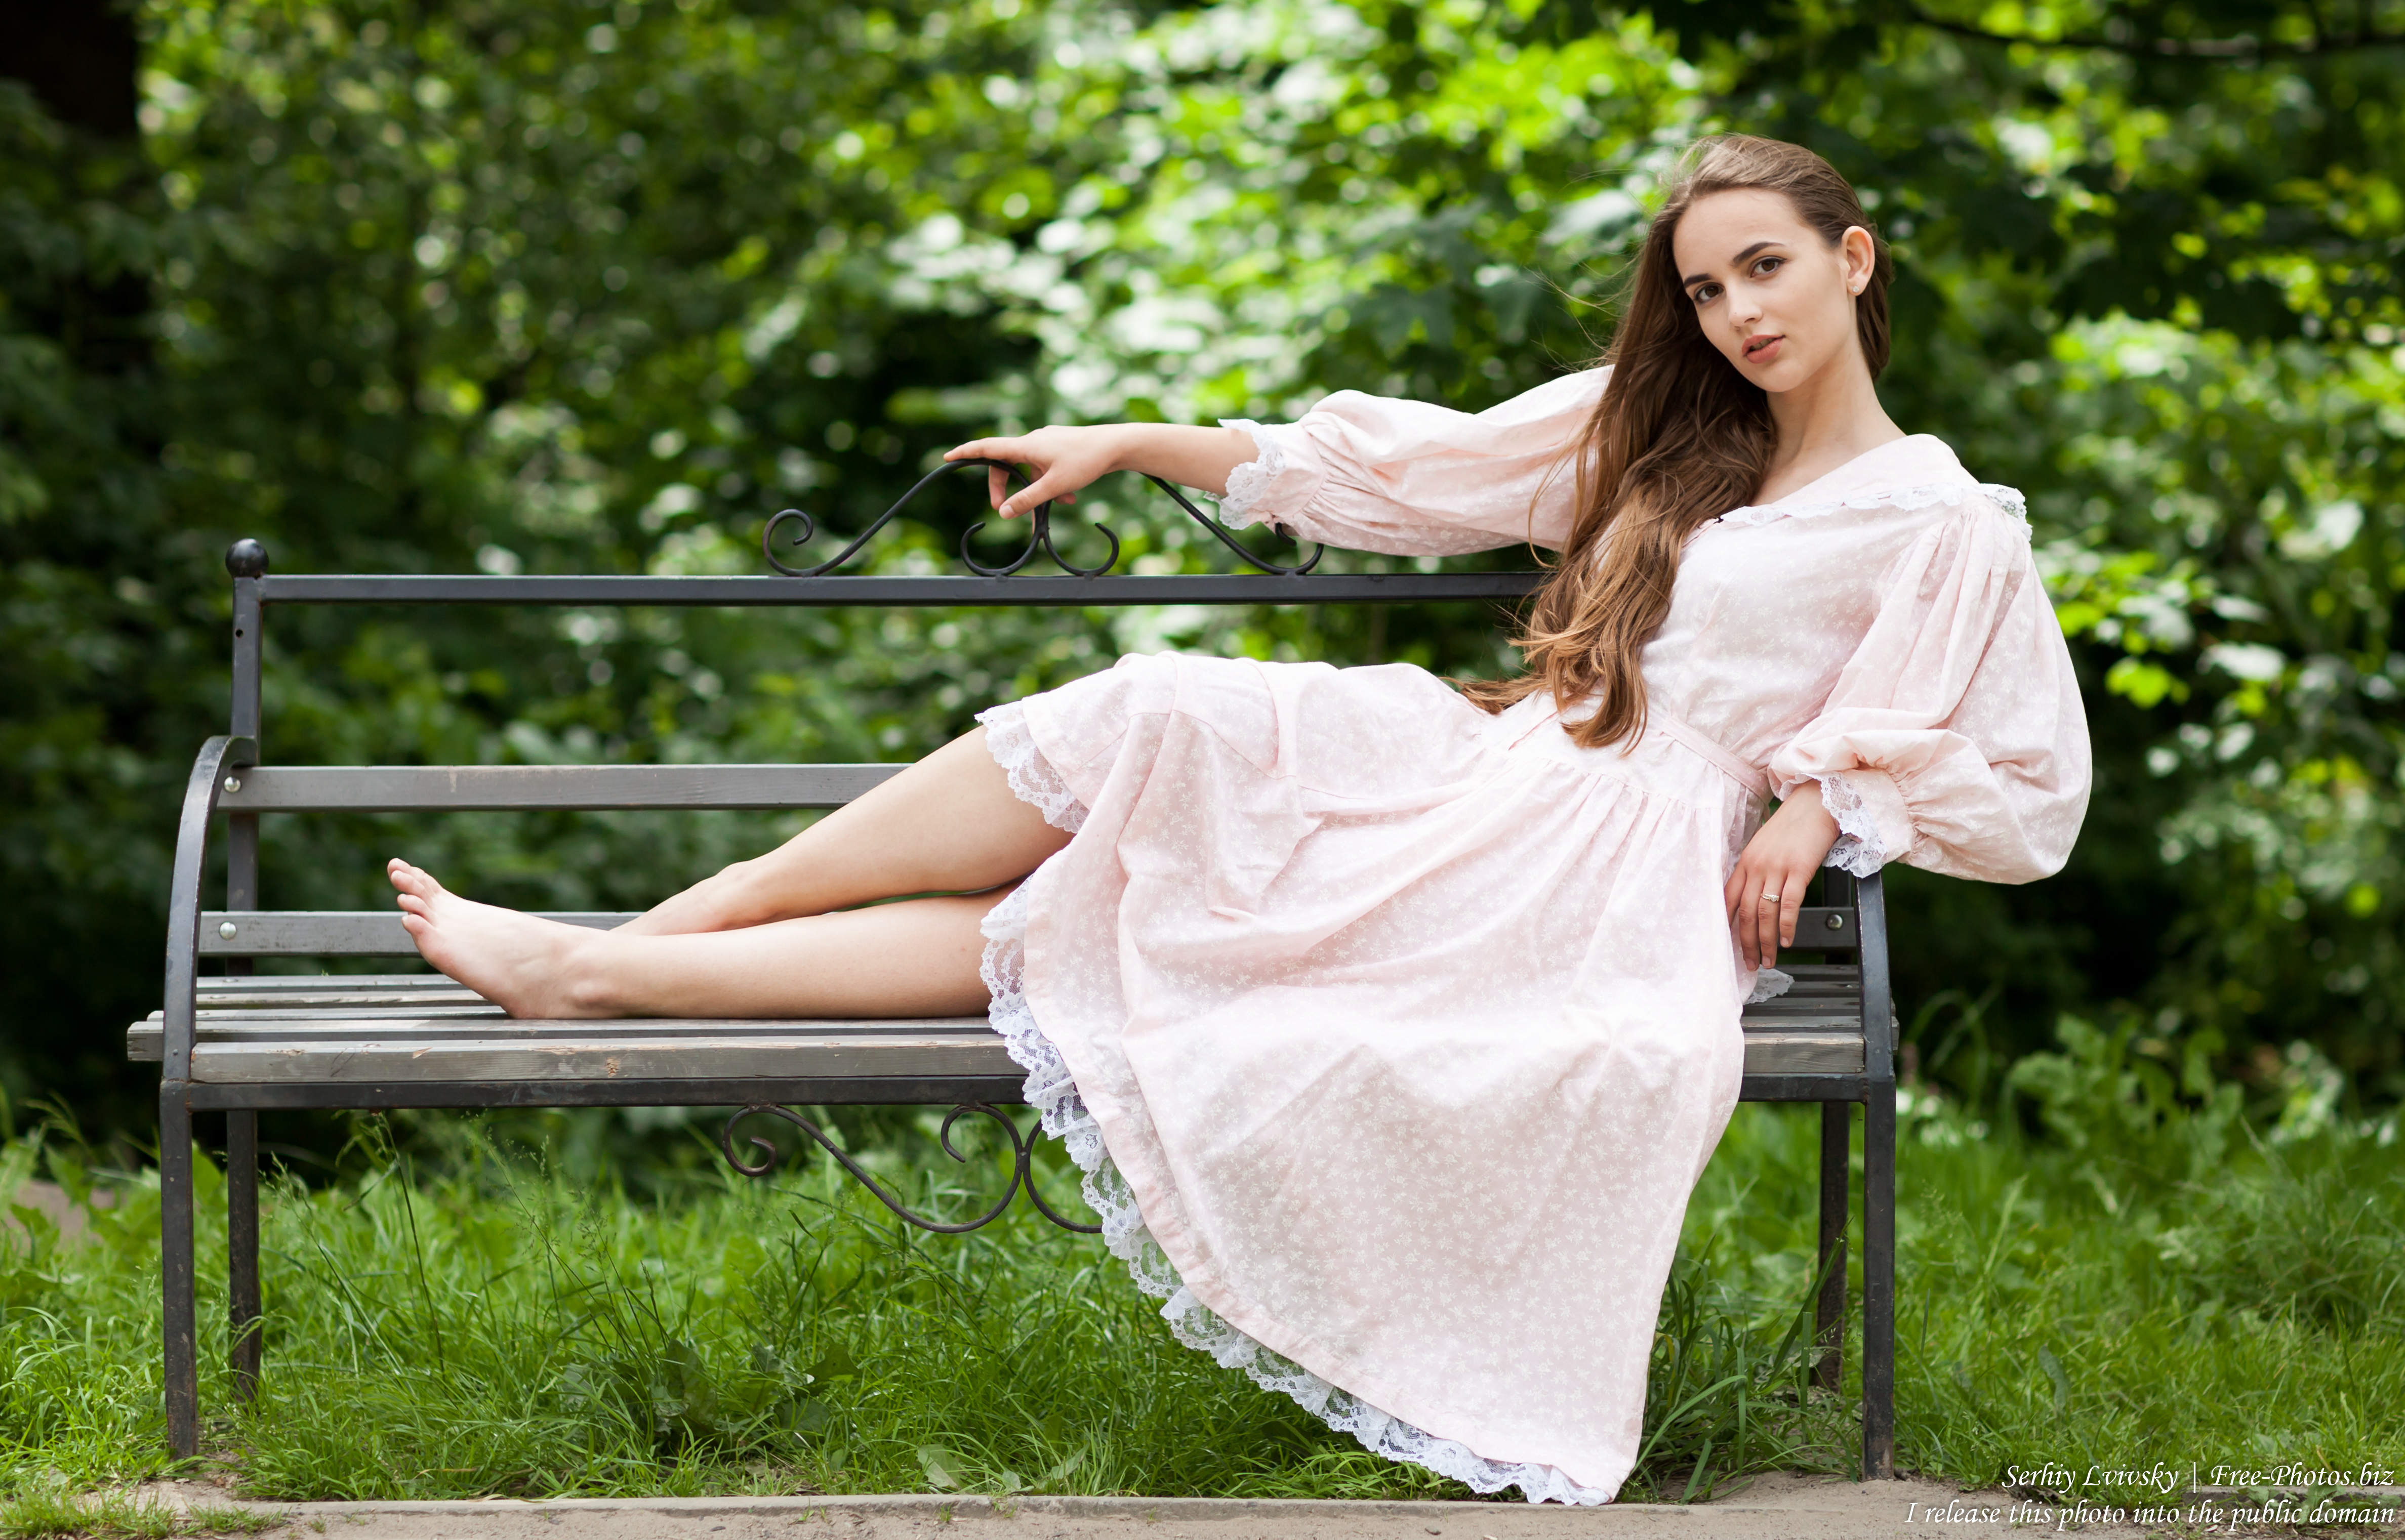 Vika - a 19-year-old girl with natural fair hair photographed in June 2017 by Serhiy Lvivsky, picture 29